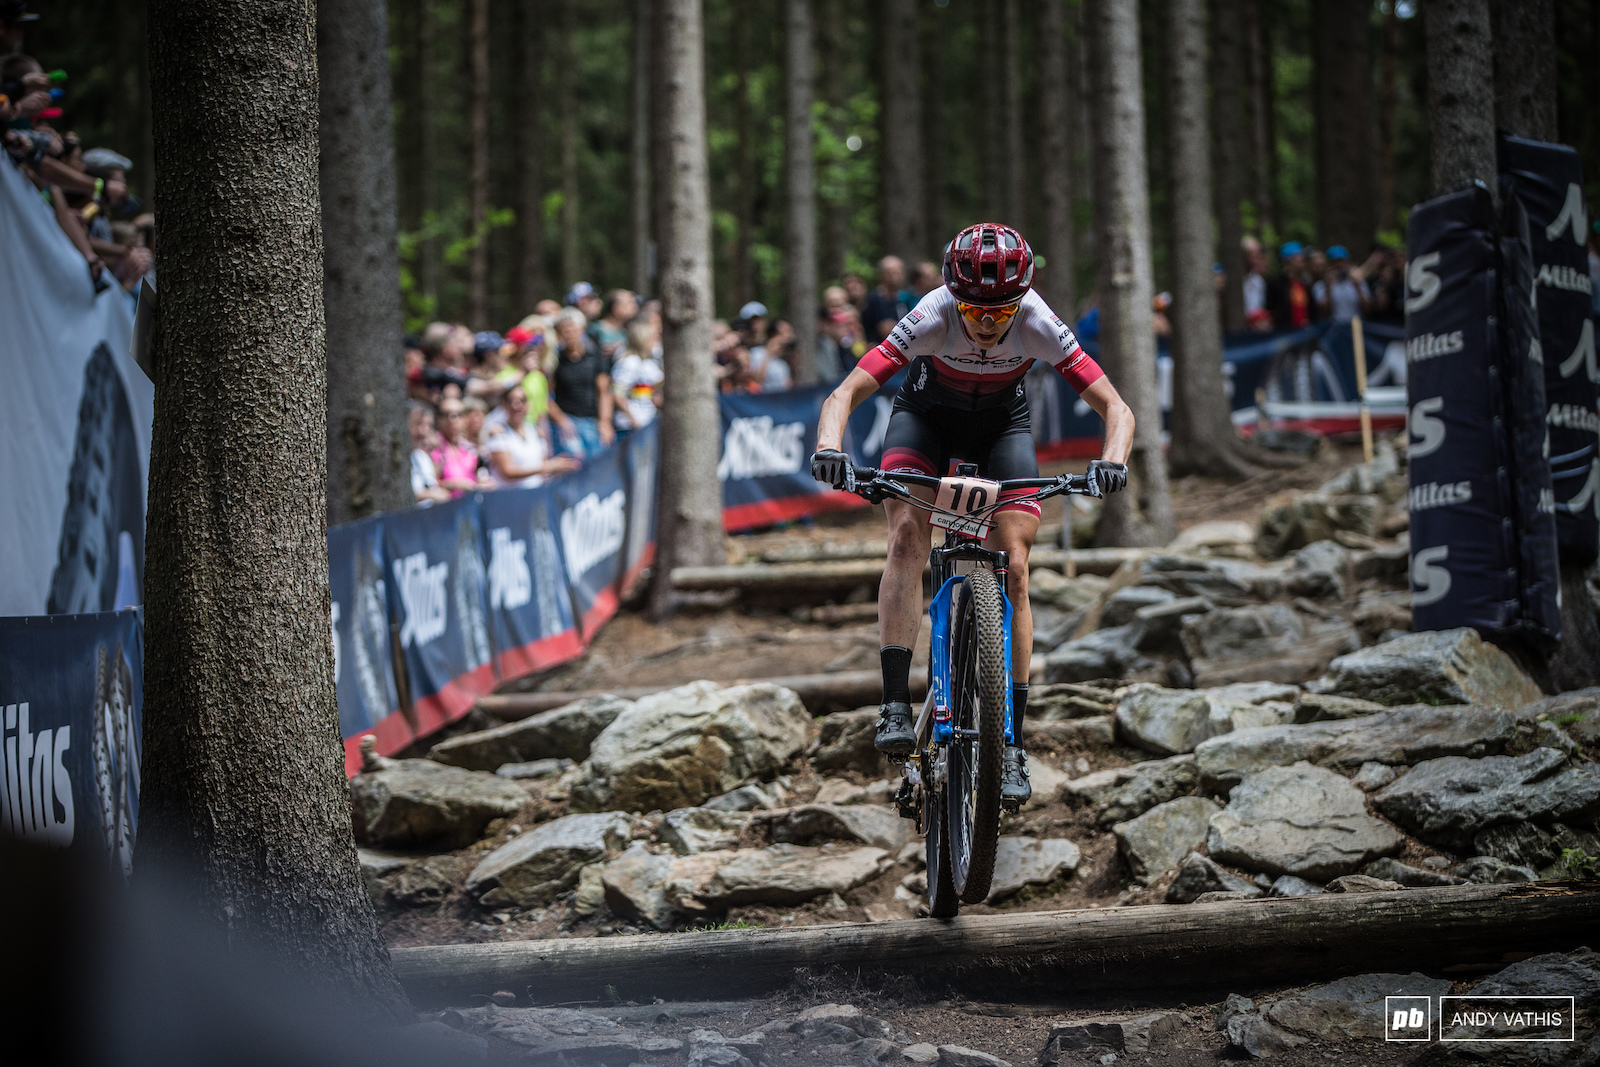 Major milestone for Haley Smith today. She earned her first UCI World Cup podium in third and the fastest lap time in the Women s field. She s been climbing that ladder steady now.